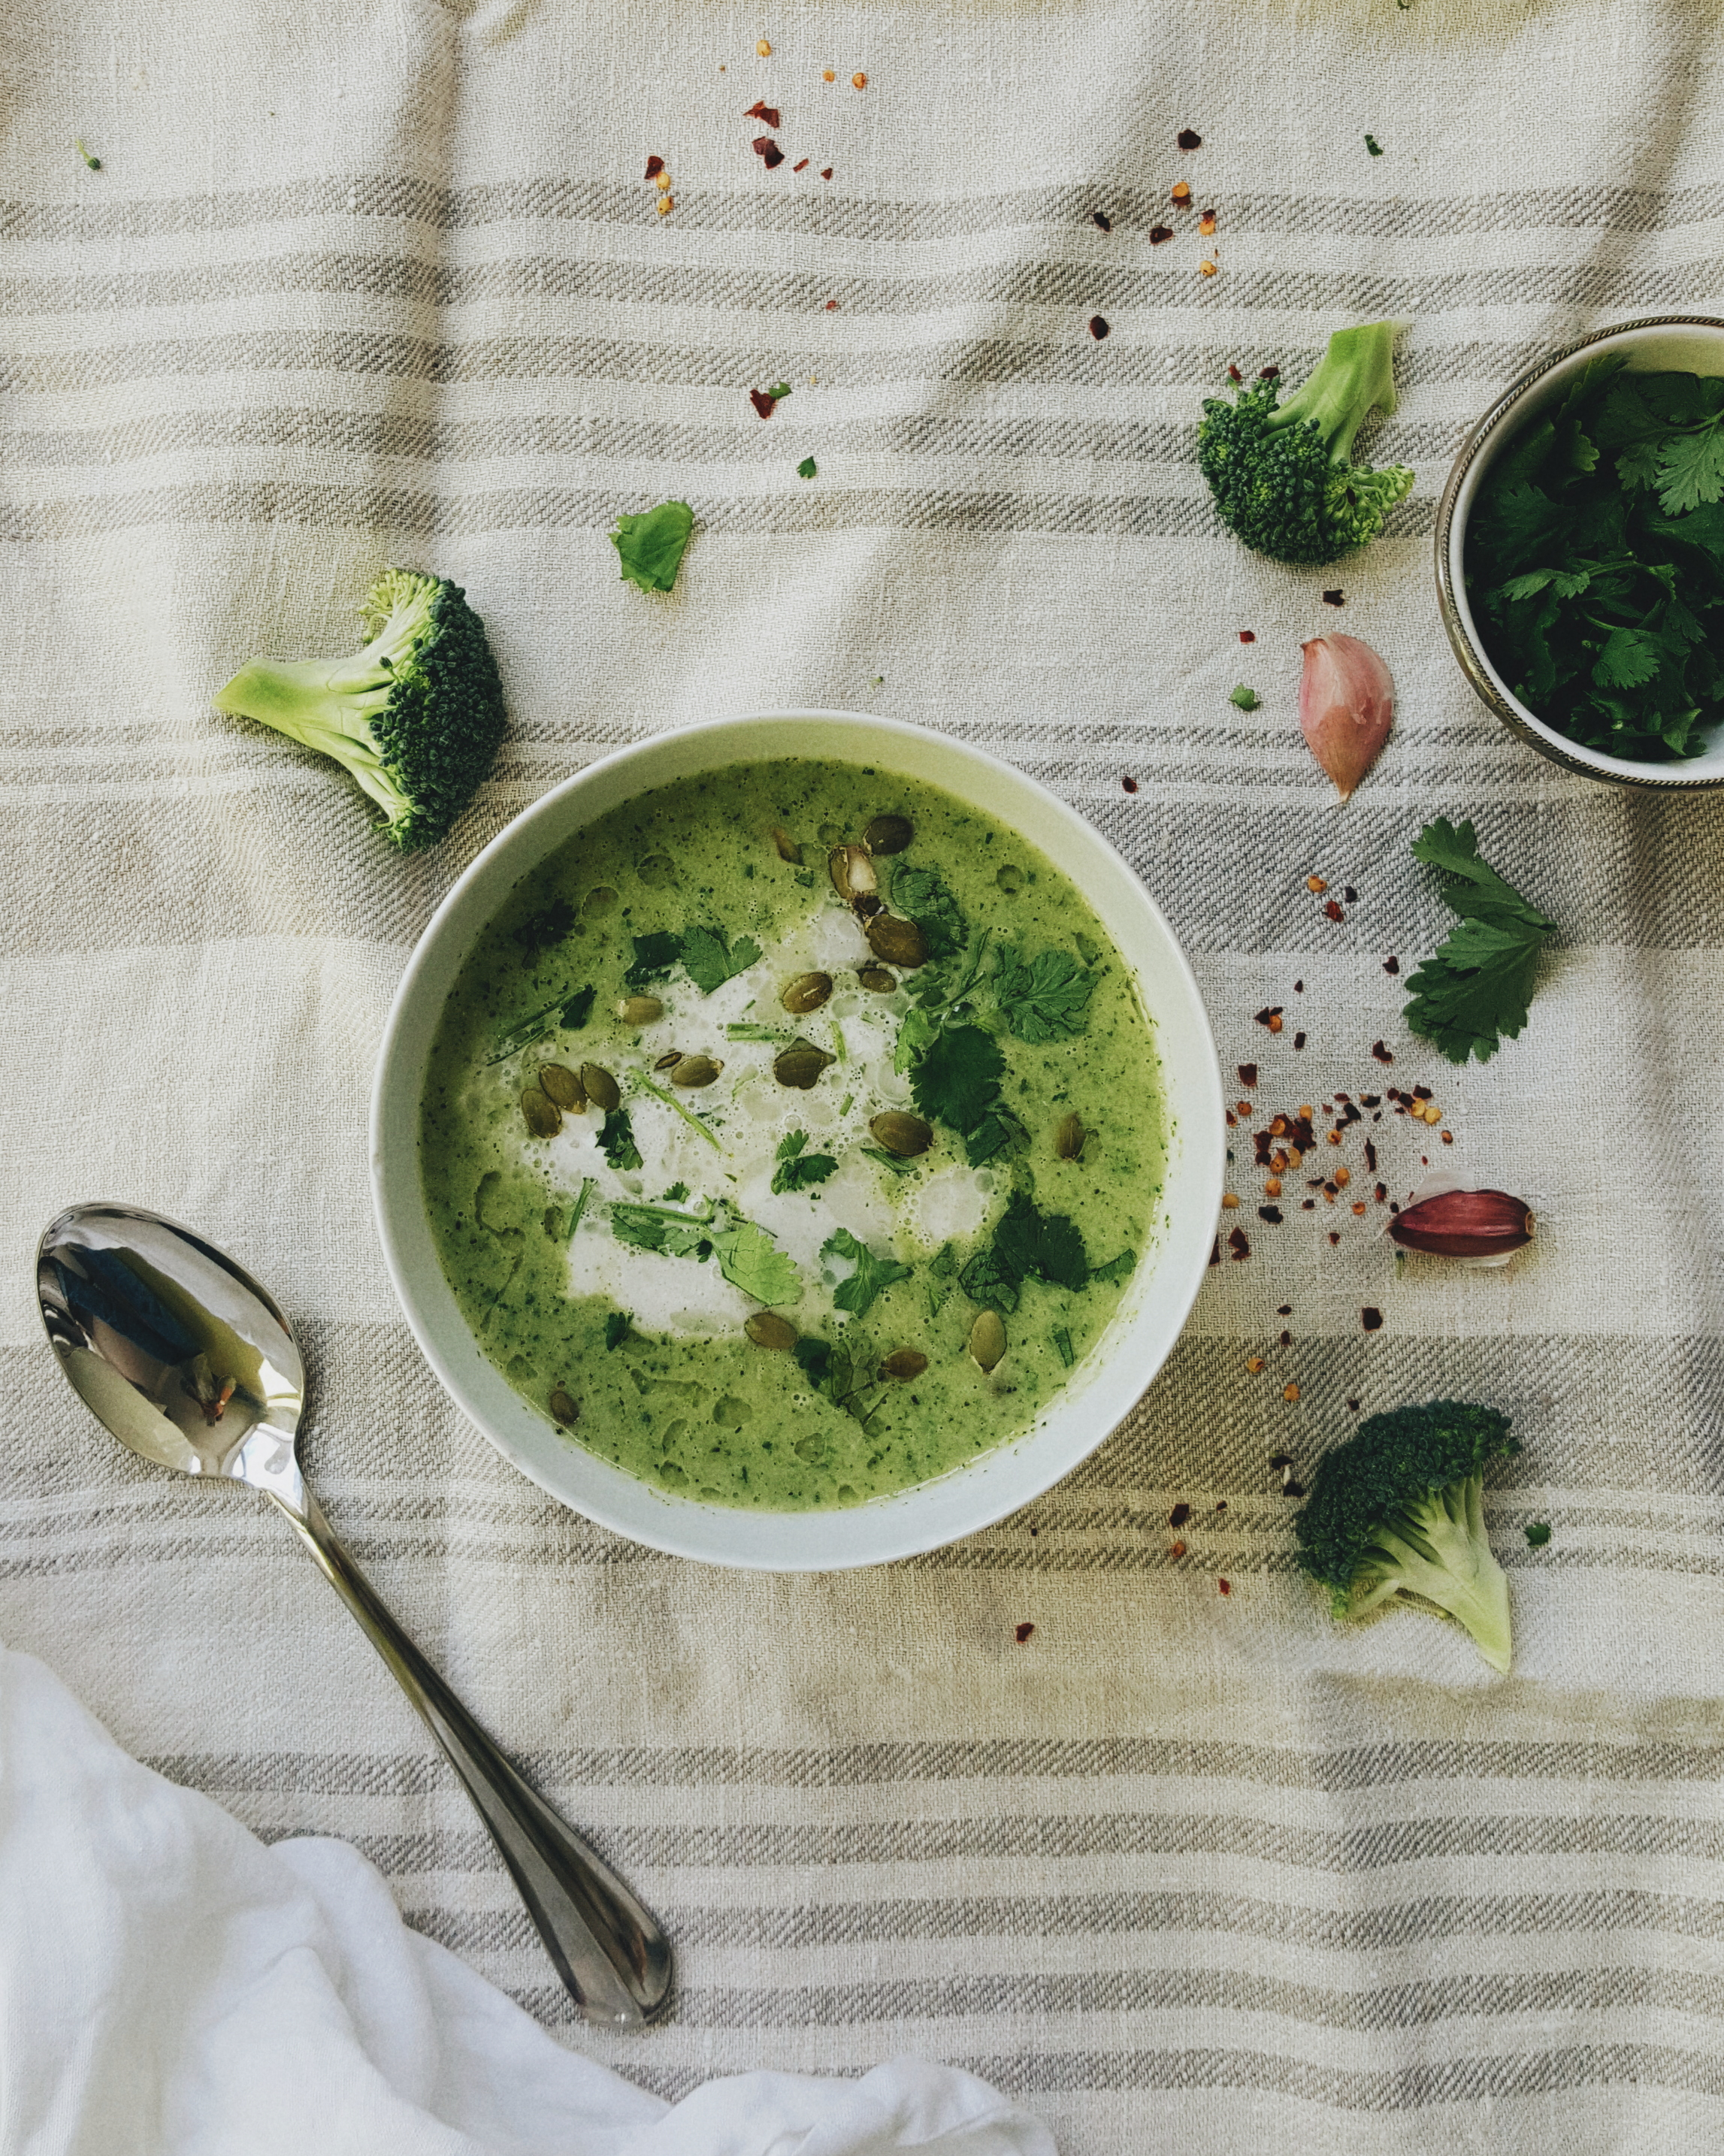 Littlegreenshed Blog - coconut and broccoli soup